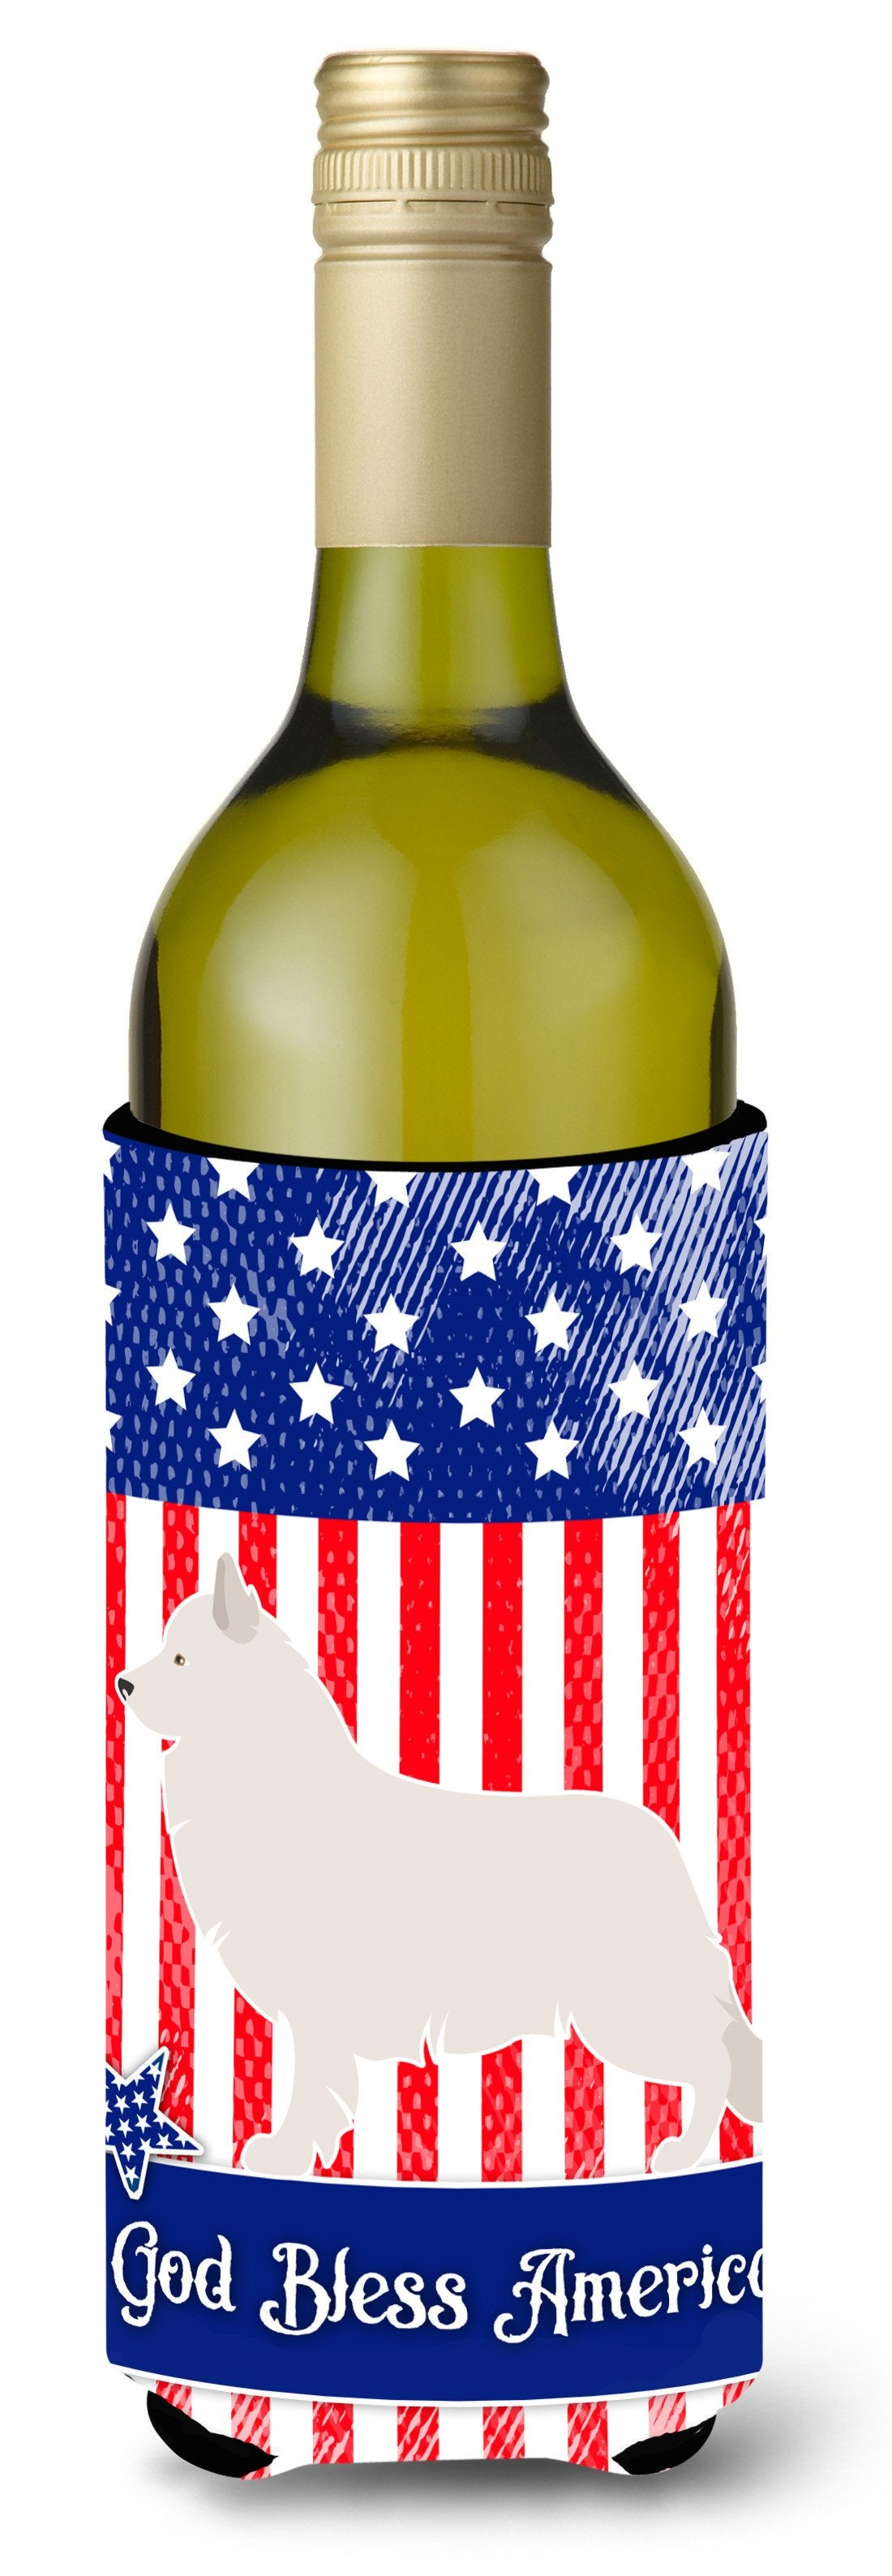 Berger Blanc Suisse American Wine Bottle Beverge Insulator Hugger BB8373LITERK by Caroline's Treasures